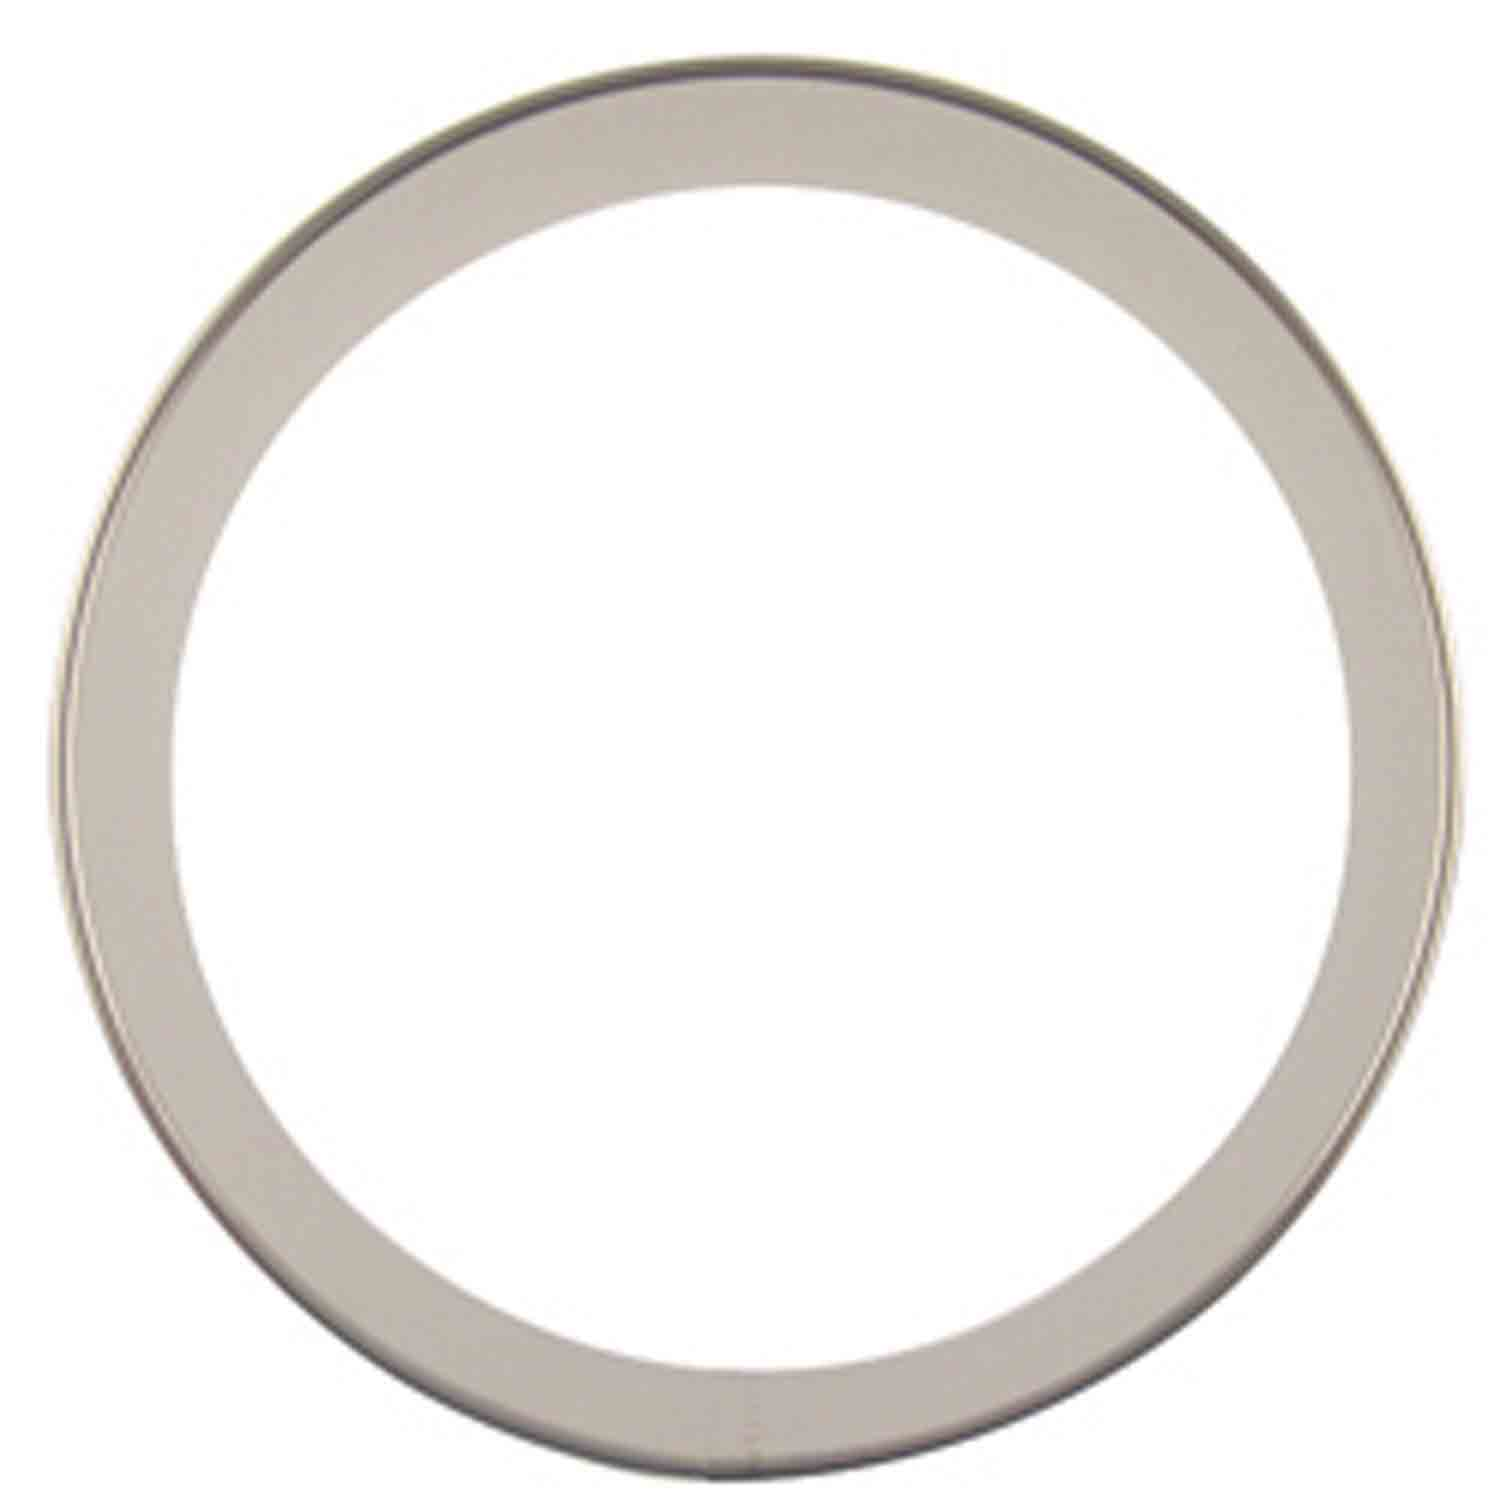 Biscuit Cutter Plain-4 1/2""